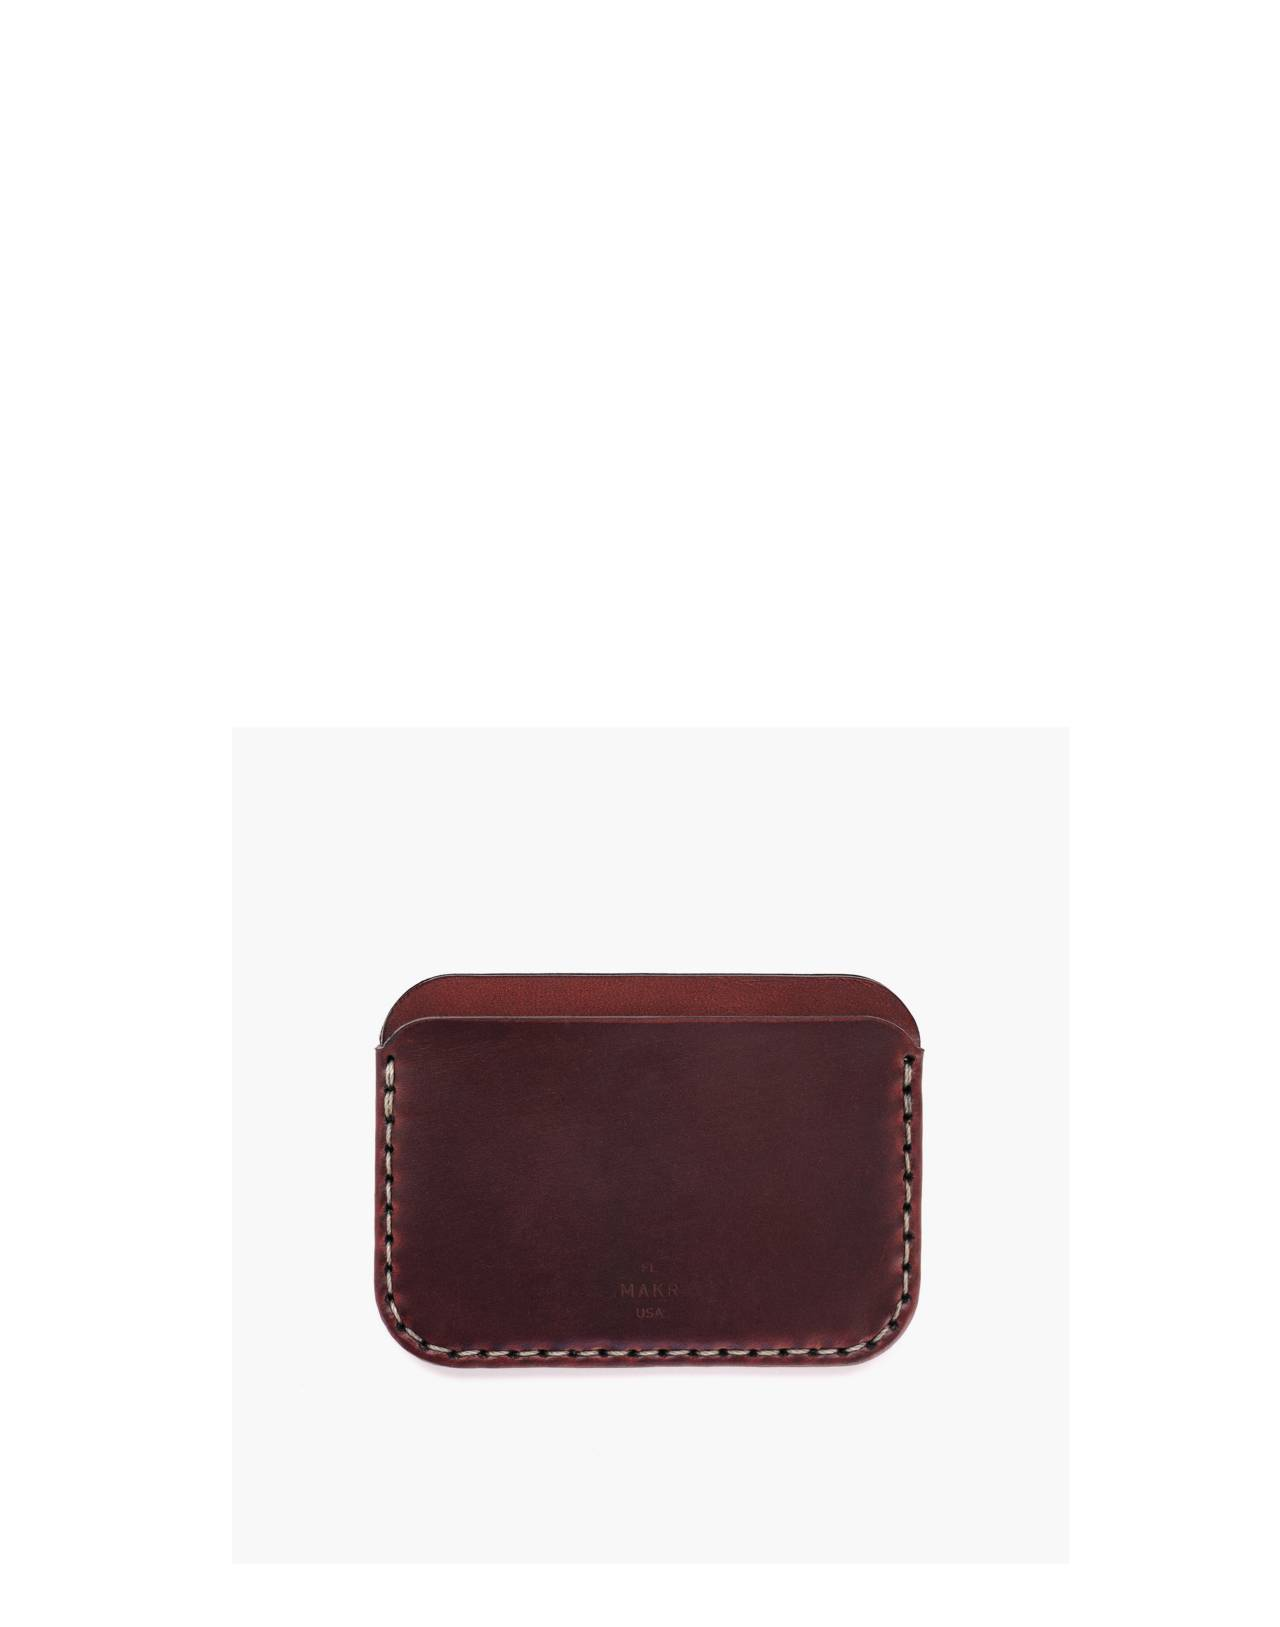 MAKR Leather Round Wallet in red image 2